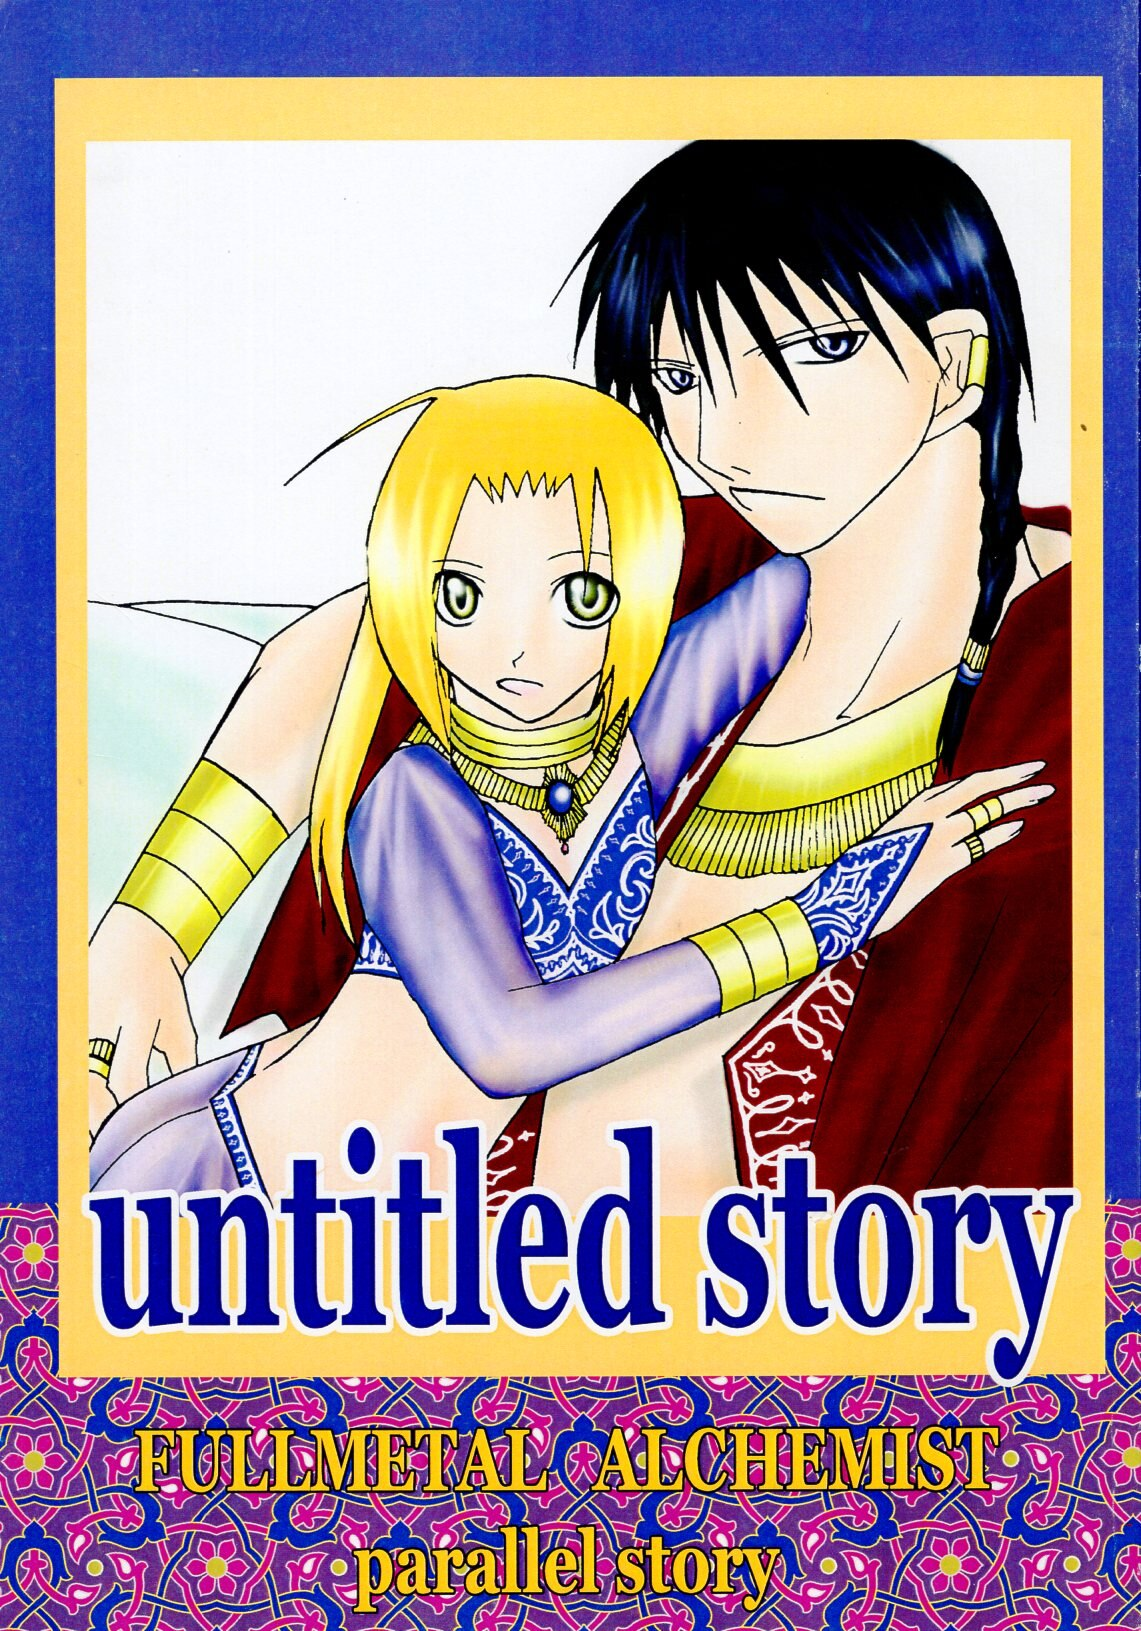 Doujinshi - Fullmetal Alchemist / Roy Mustang x Edward Elric (untitled story) / honey box